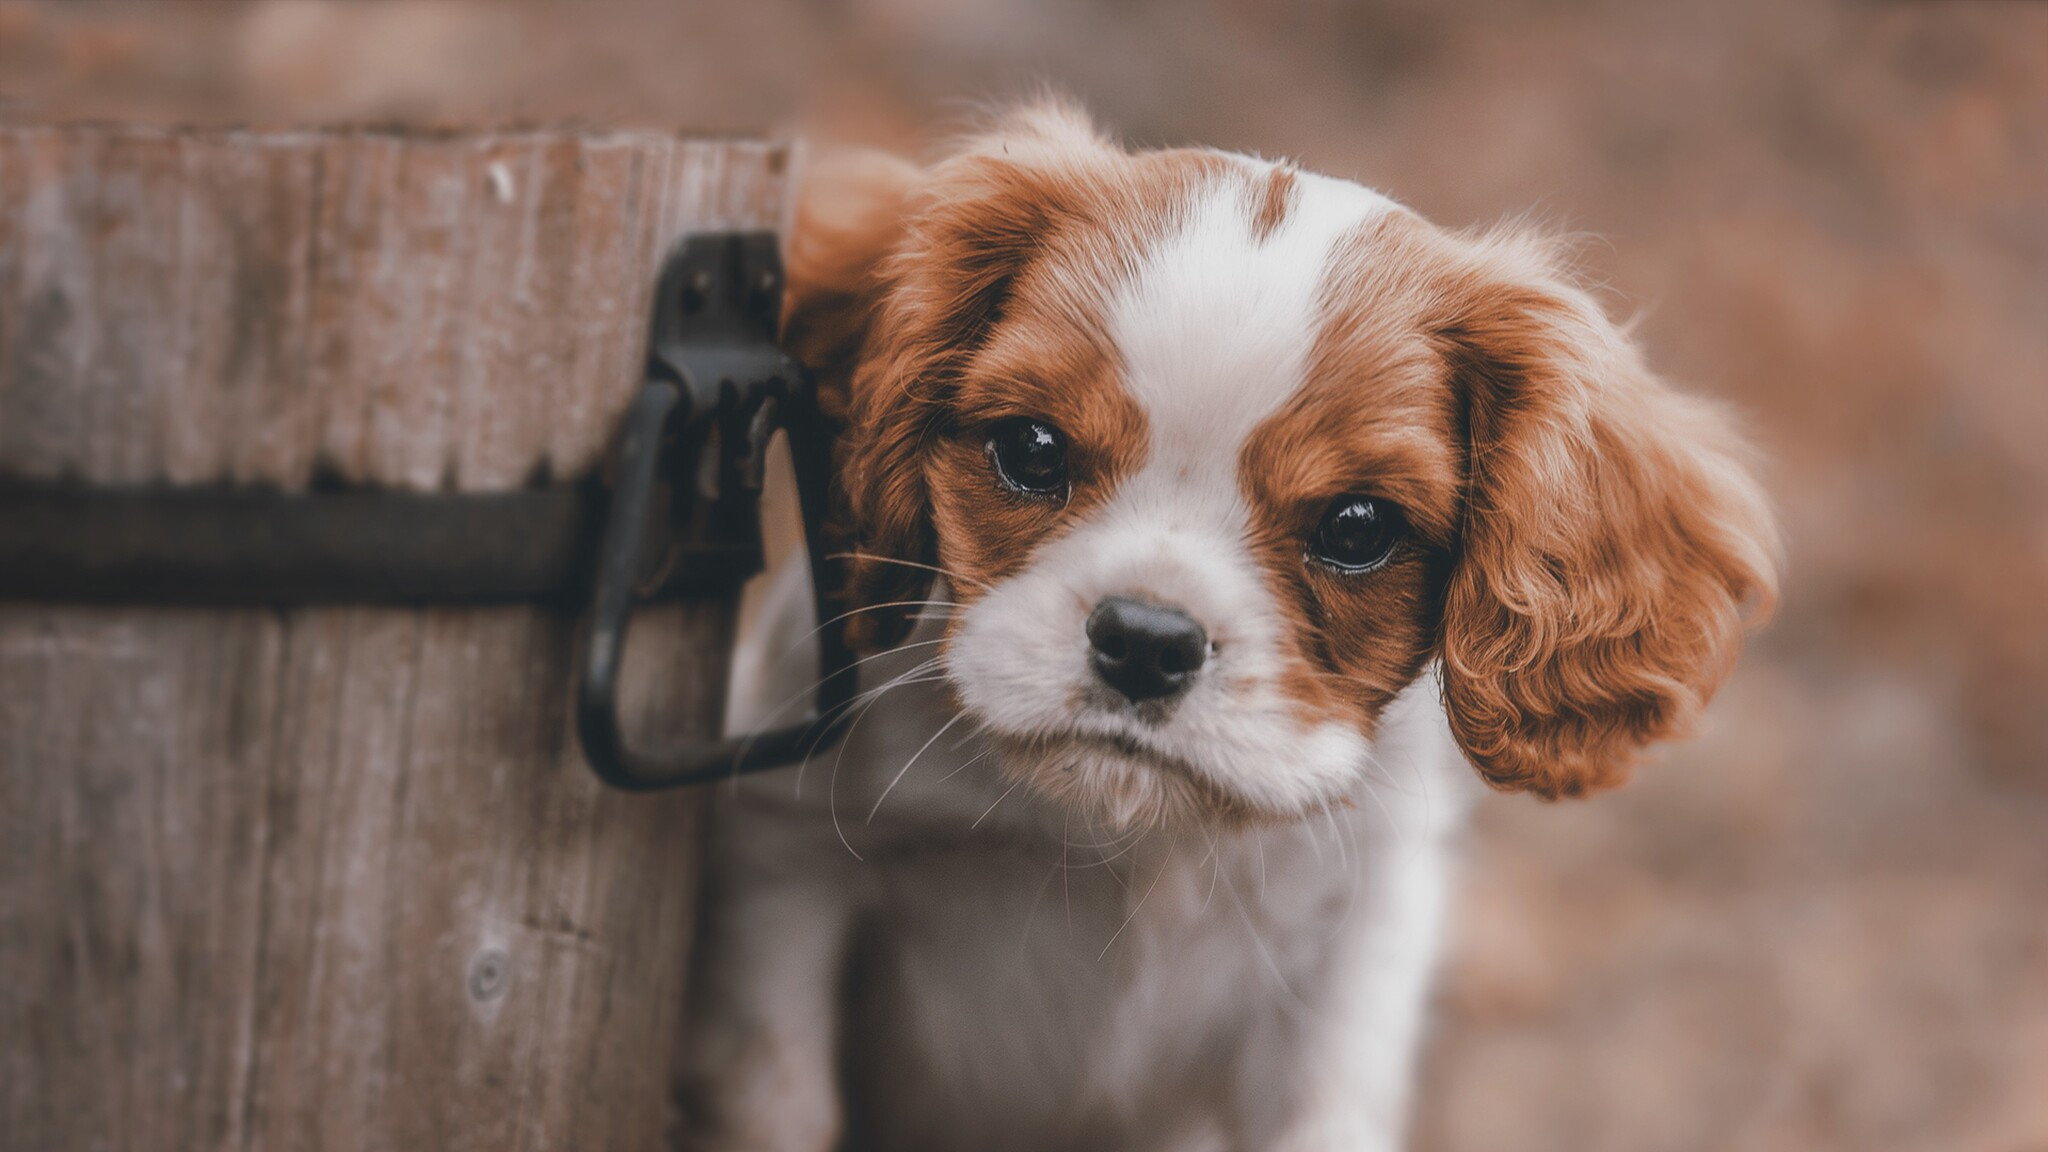 2048x1152 cute puppy 2048x1152 resolution hd 4k wallpapers images